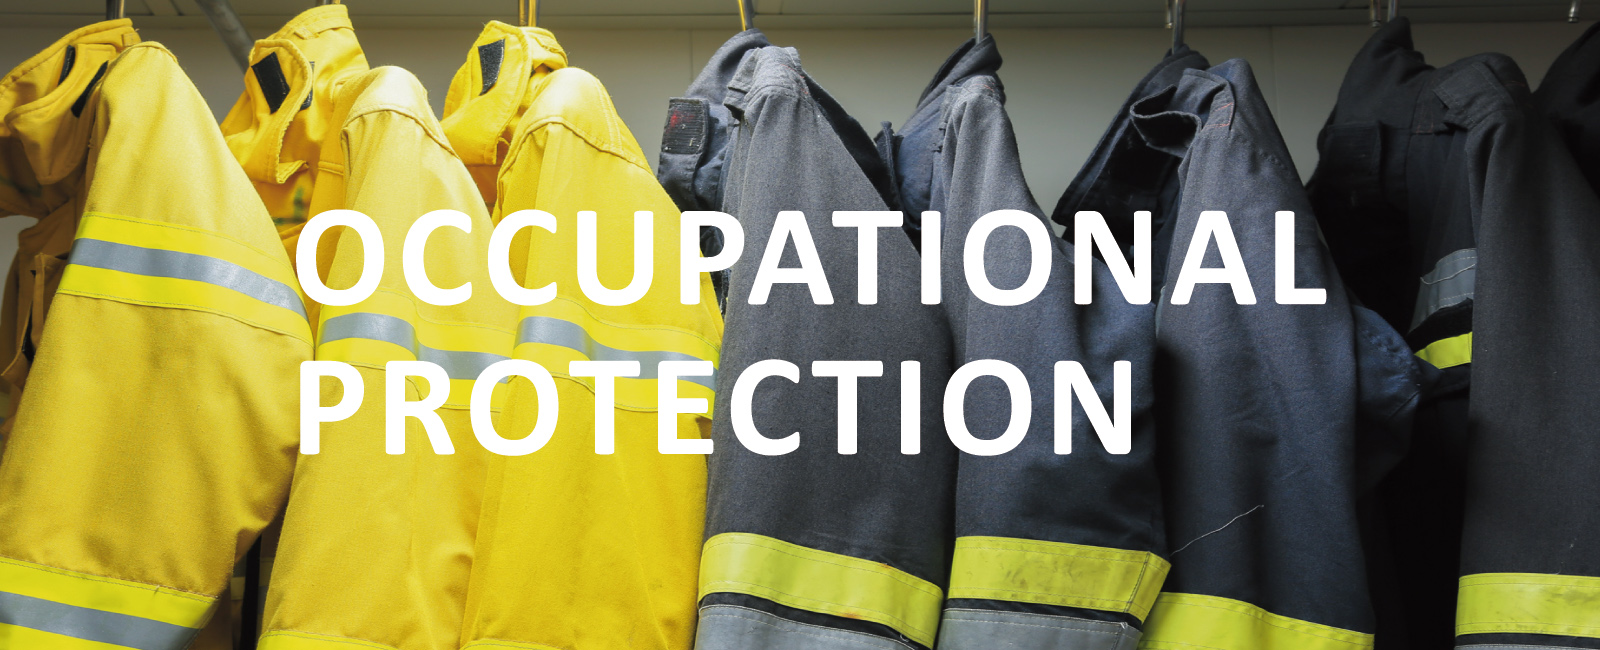 OCCUPATIONAL PROTECTION